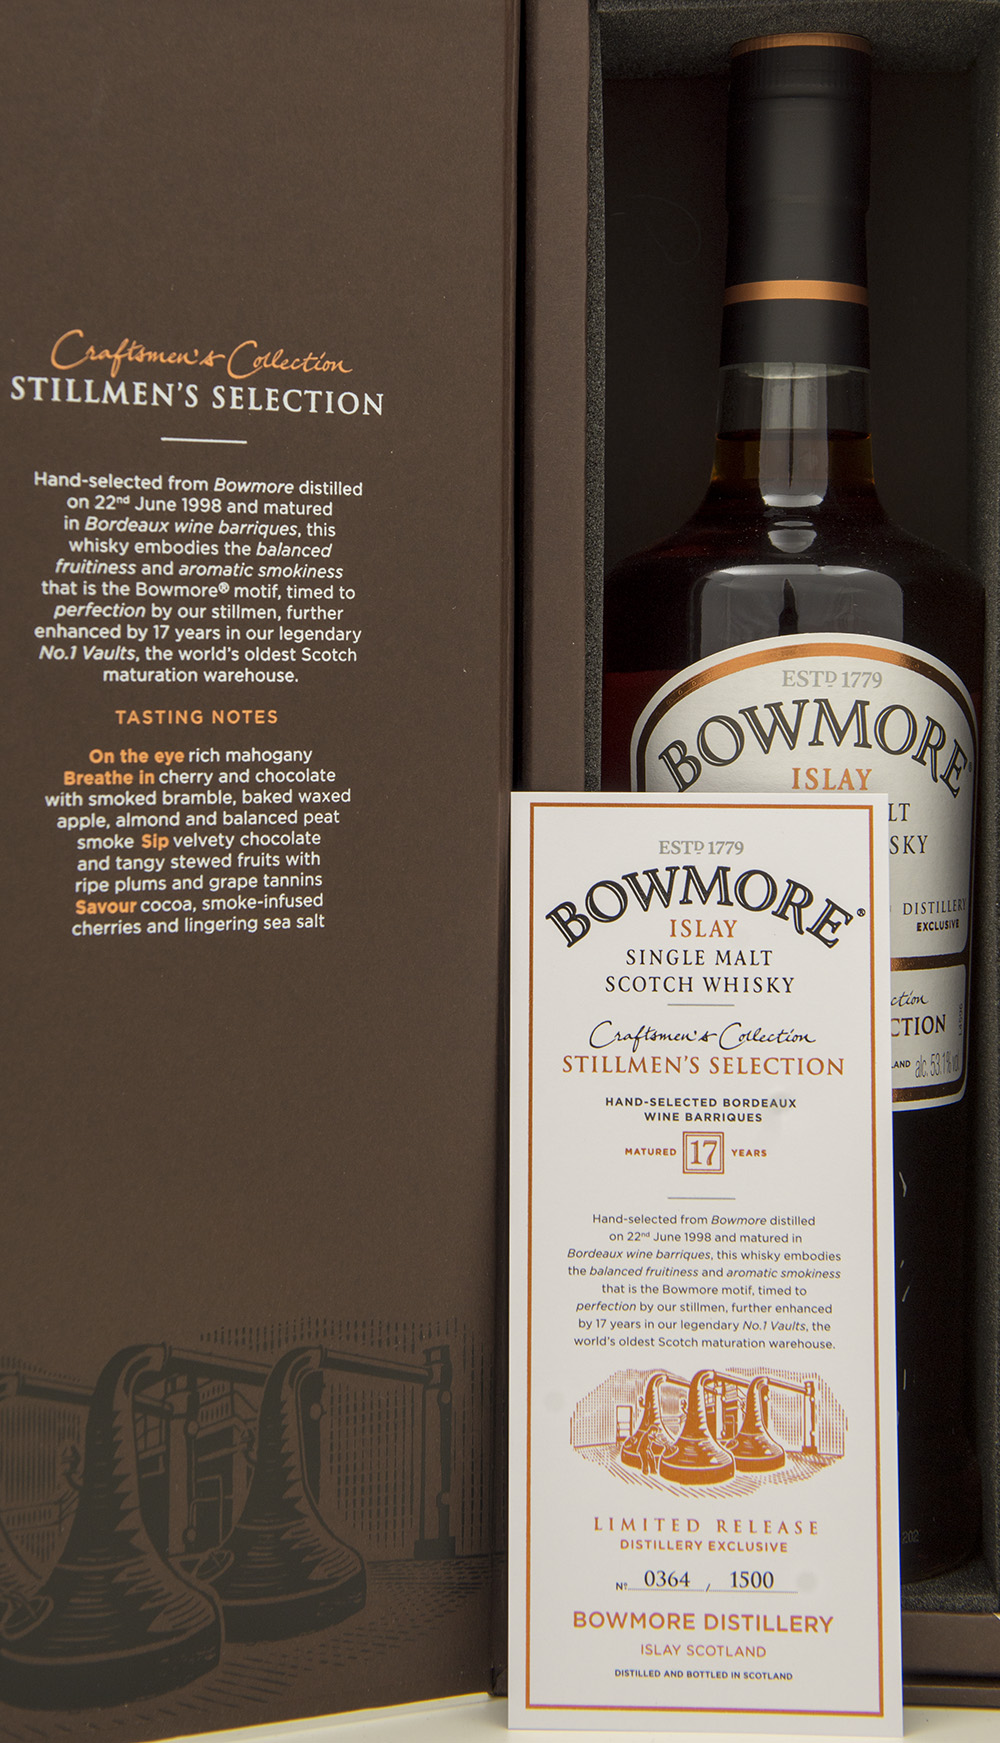 Billede: DSC_3222 - Bowmore Stillmen's Selection - box and certificate.jpg